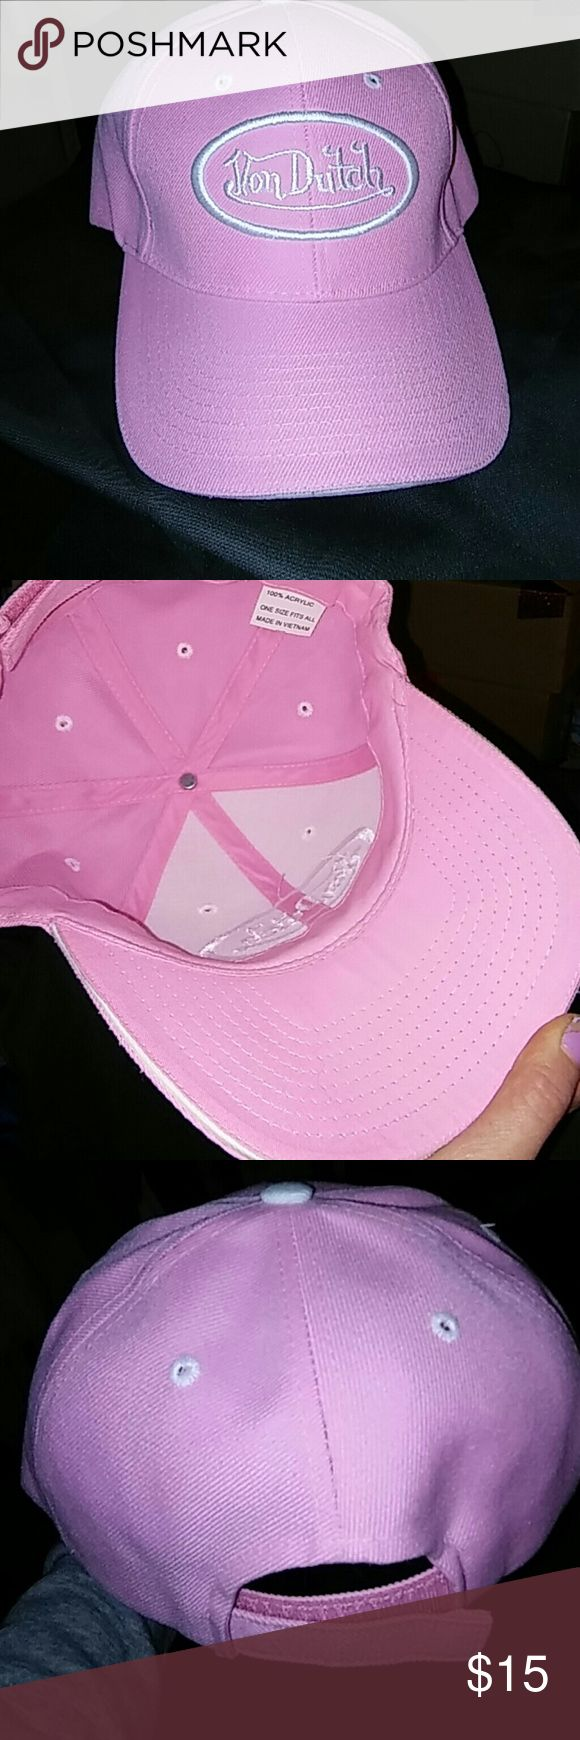 brand new Von Dutch women's baseball hat Never been more and not a single stain or mark on it von dutch Accessories Hats